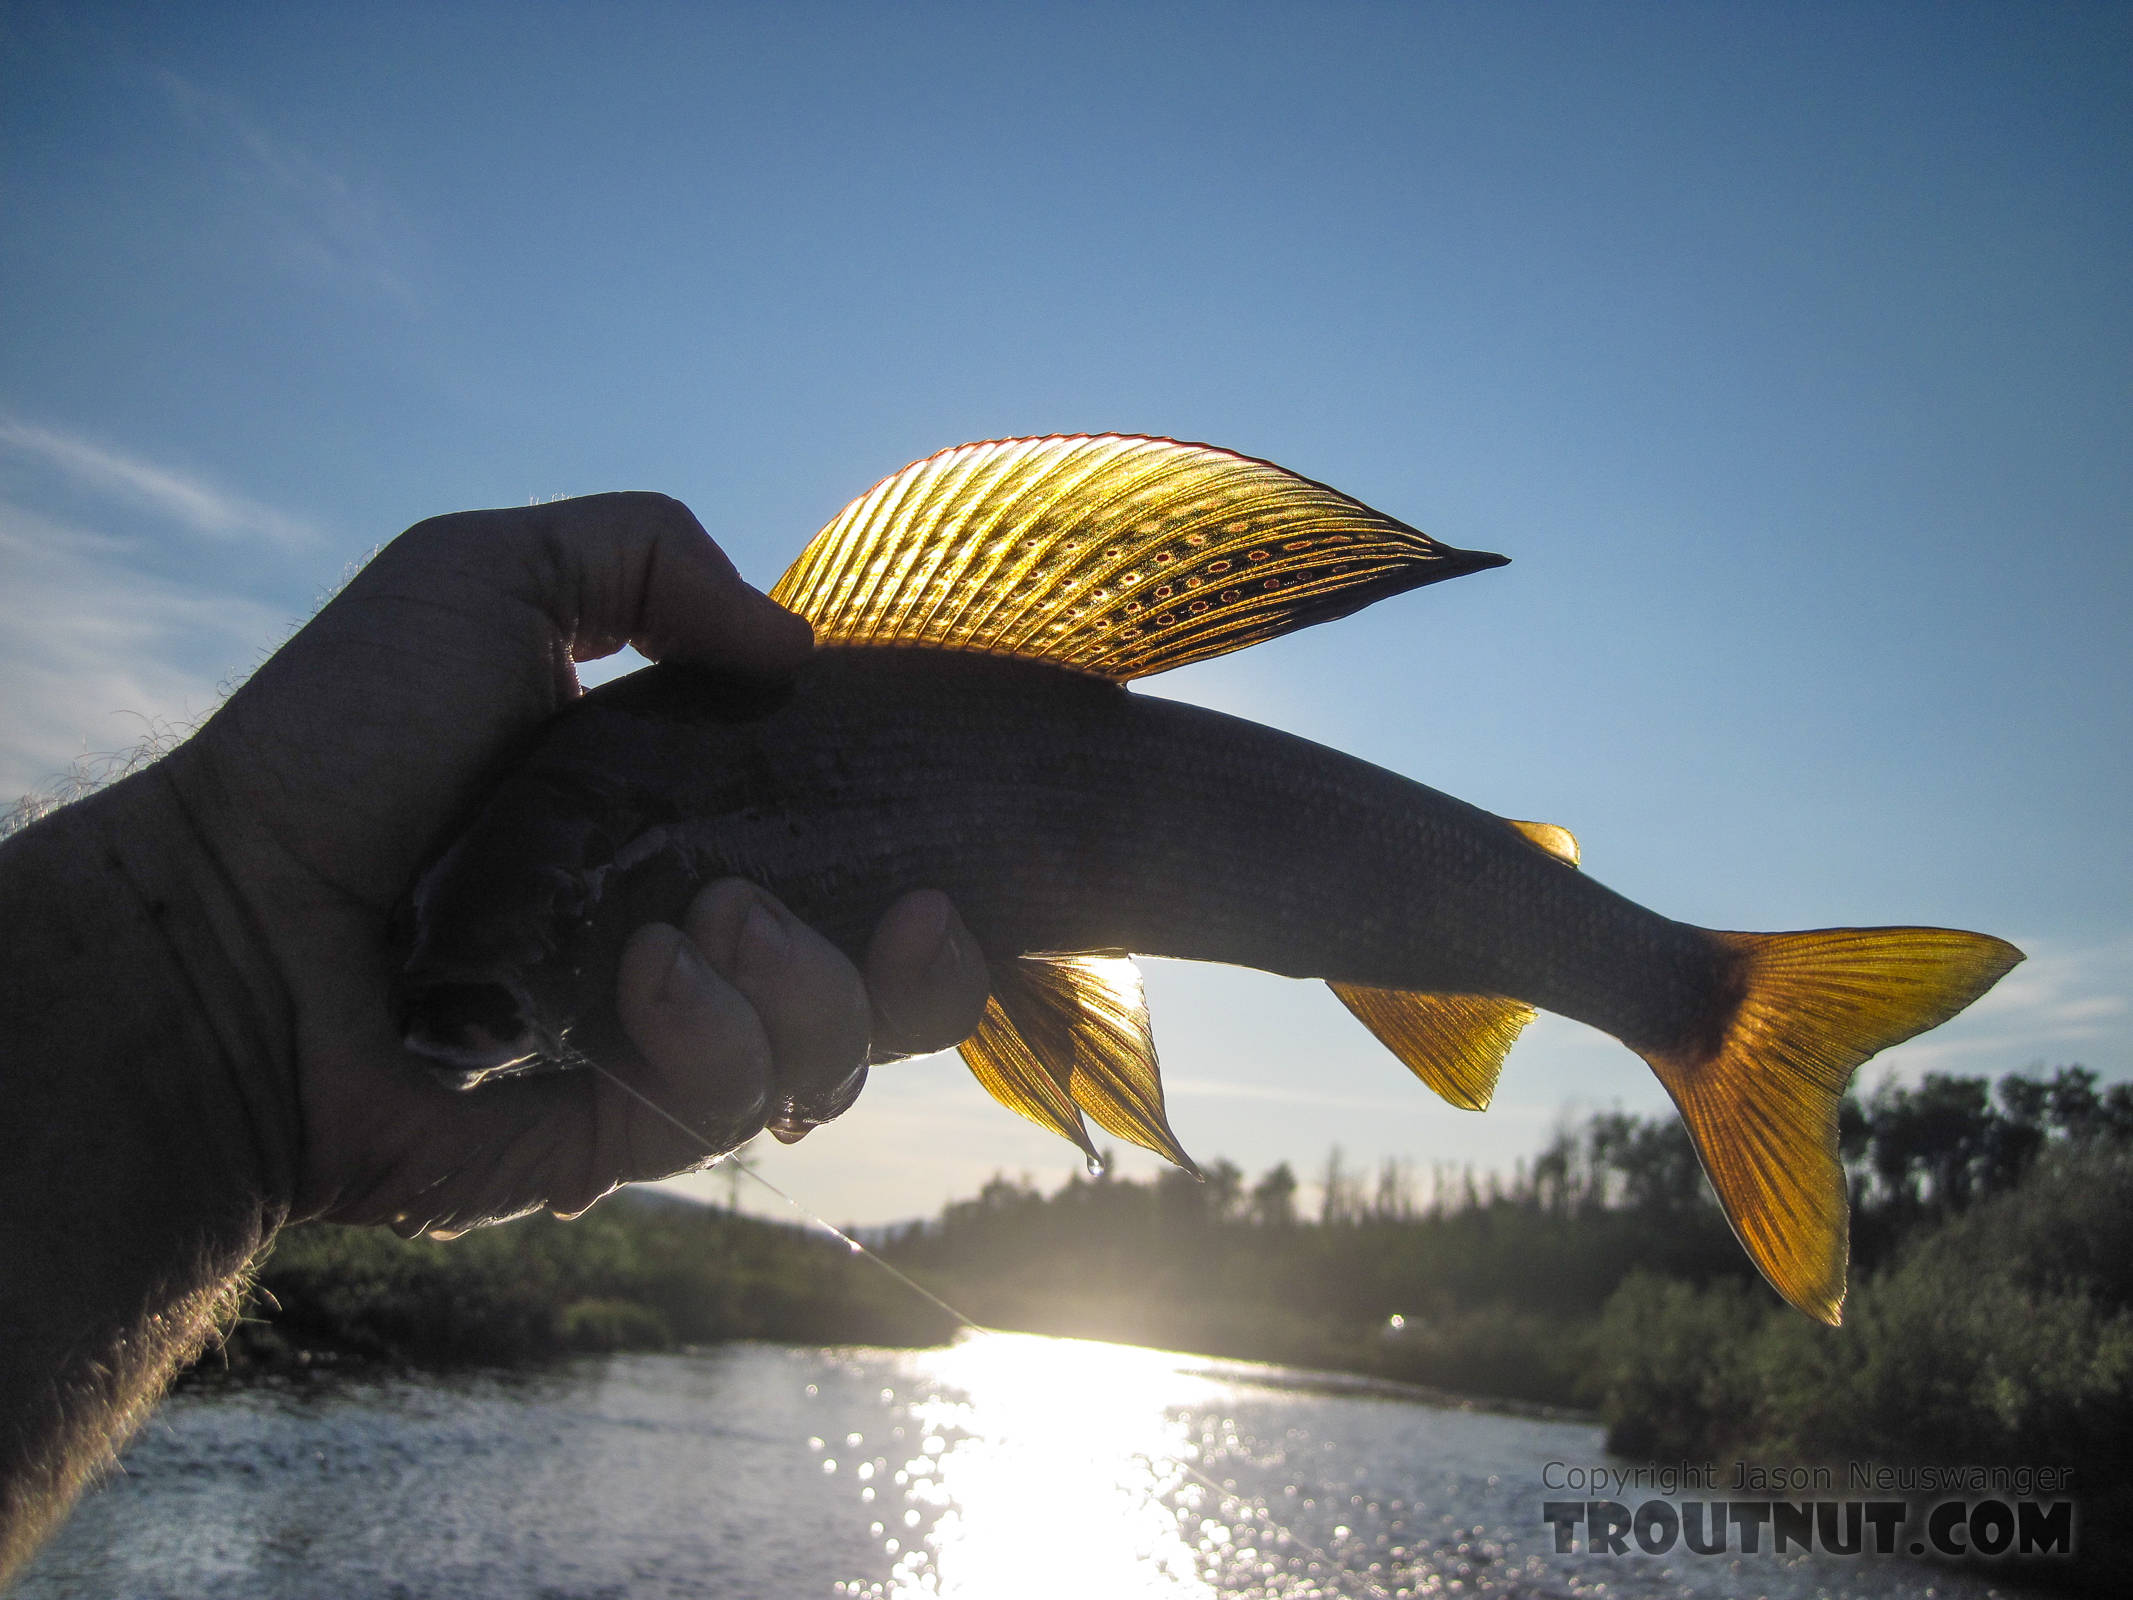 Playing around a bit with backlighting and demonstrating how not to hold a fish. From Nome Creek in Alaska.